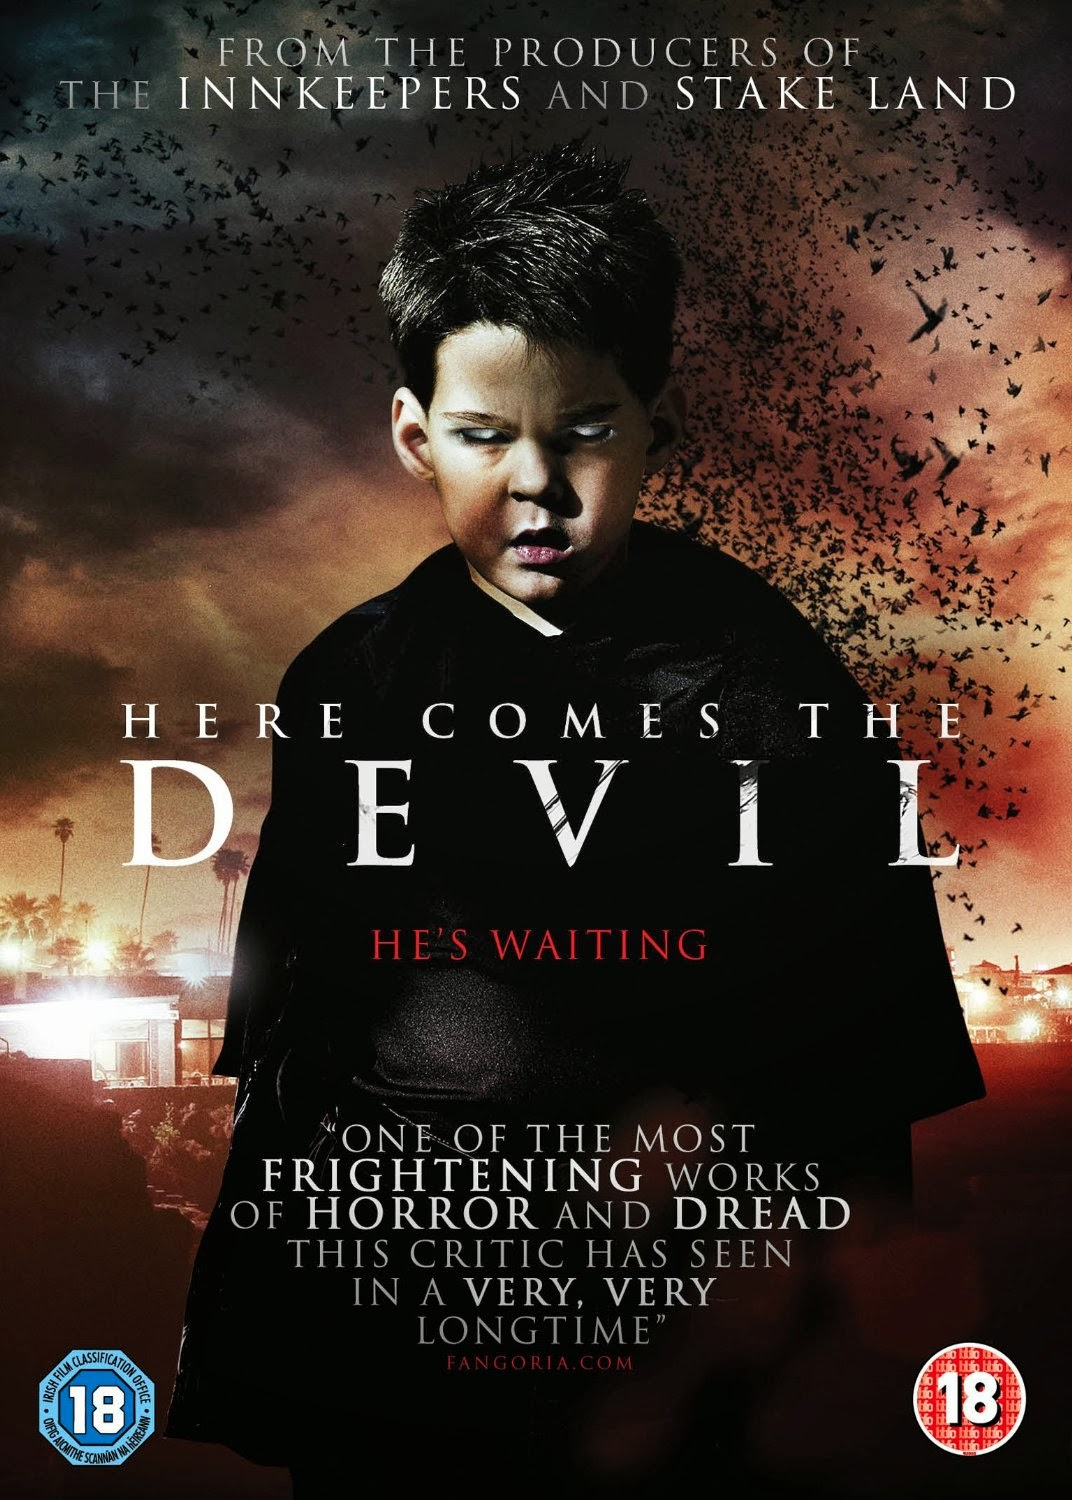 Online Here Comes the Devil Movie 2012 Put Locker Streaming